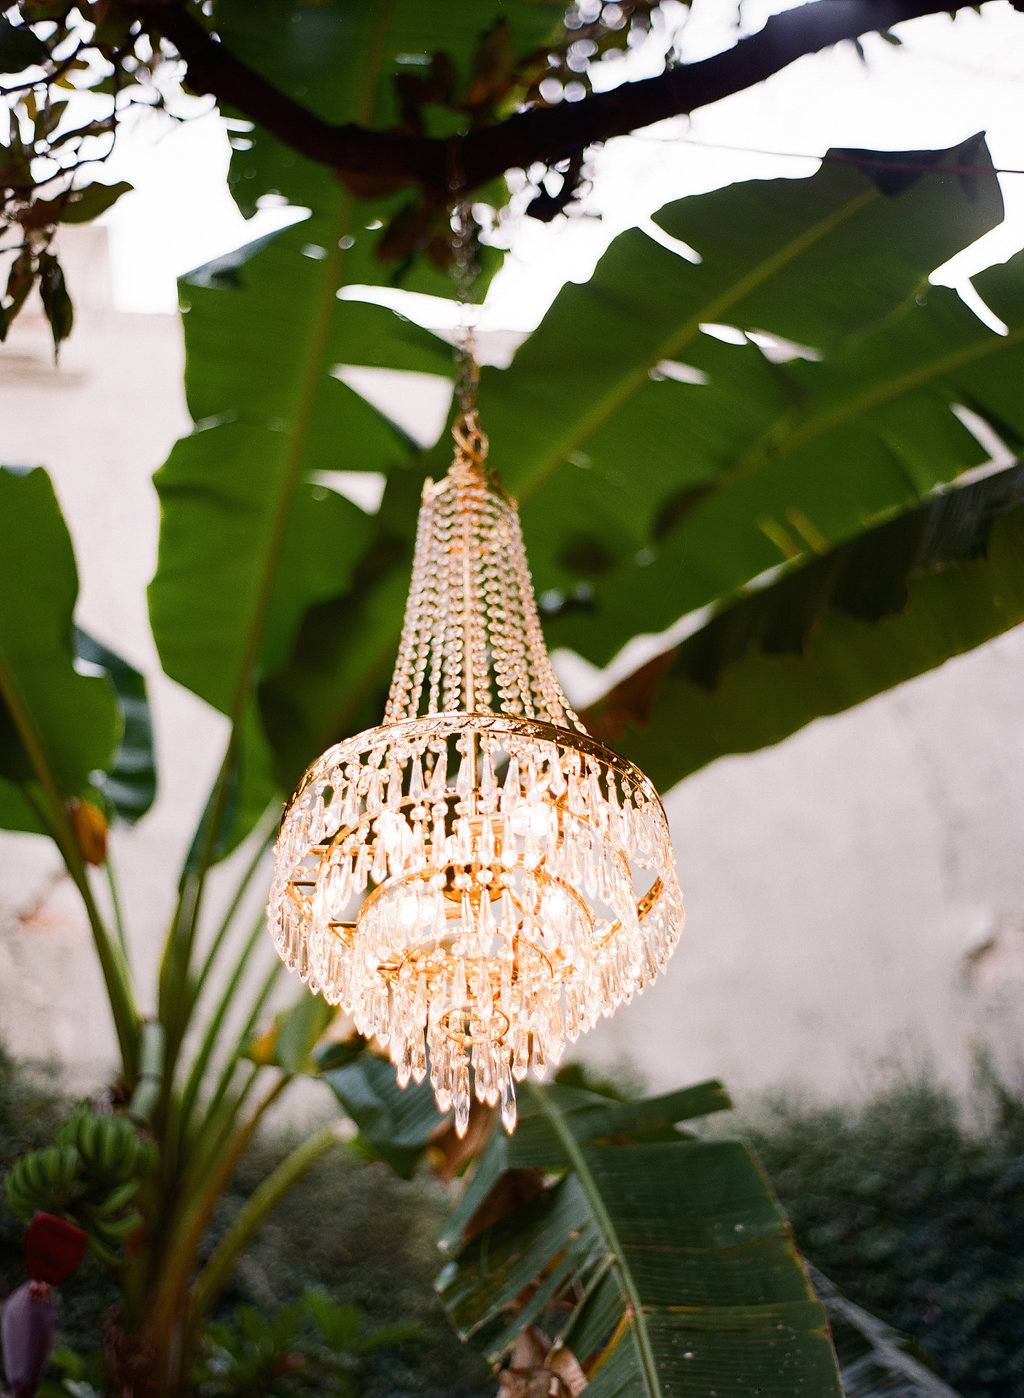 Chandeliers in trees for a secret garden wedding | This is what happens when a bride asks her guests to wear all white | Wedding En Blanc | Sapphire Events | Erika Parker Photography Montegut House | Luxury Wedding | Courtyard wedding | French Quarter Wedding | Luxe Wedding Details